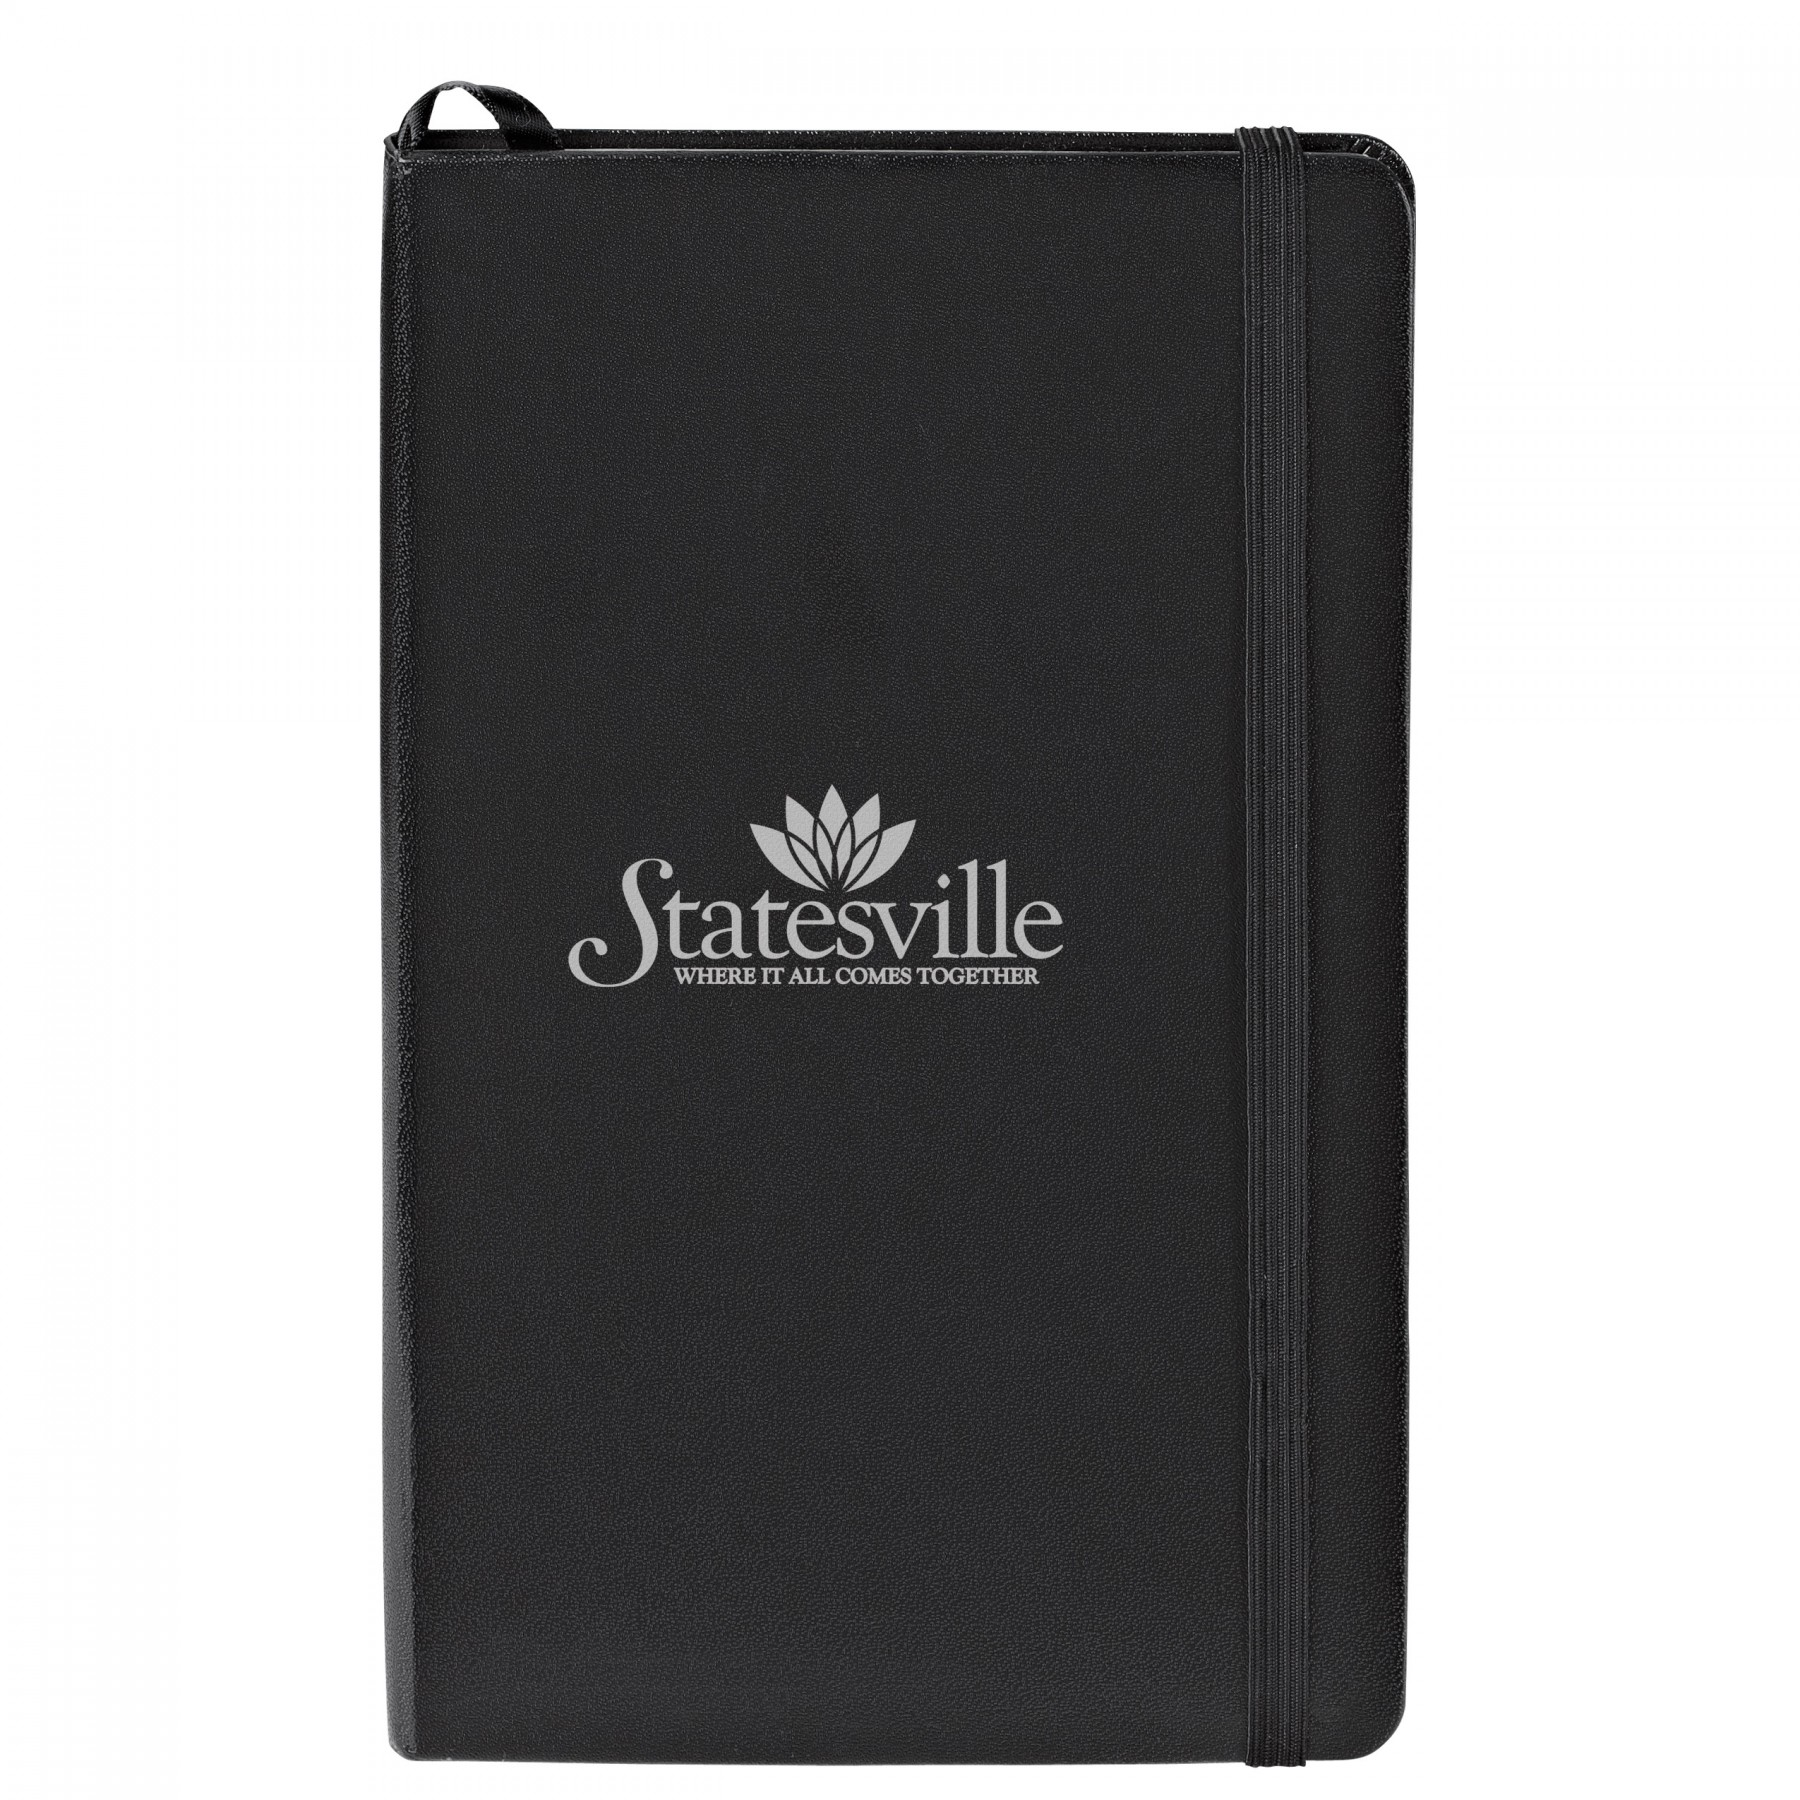 Classico Hard Cover Journal, ST4123, 1 Colour Imprint